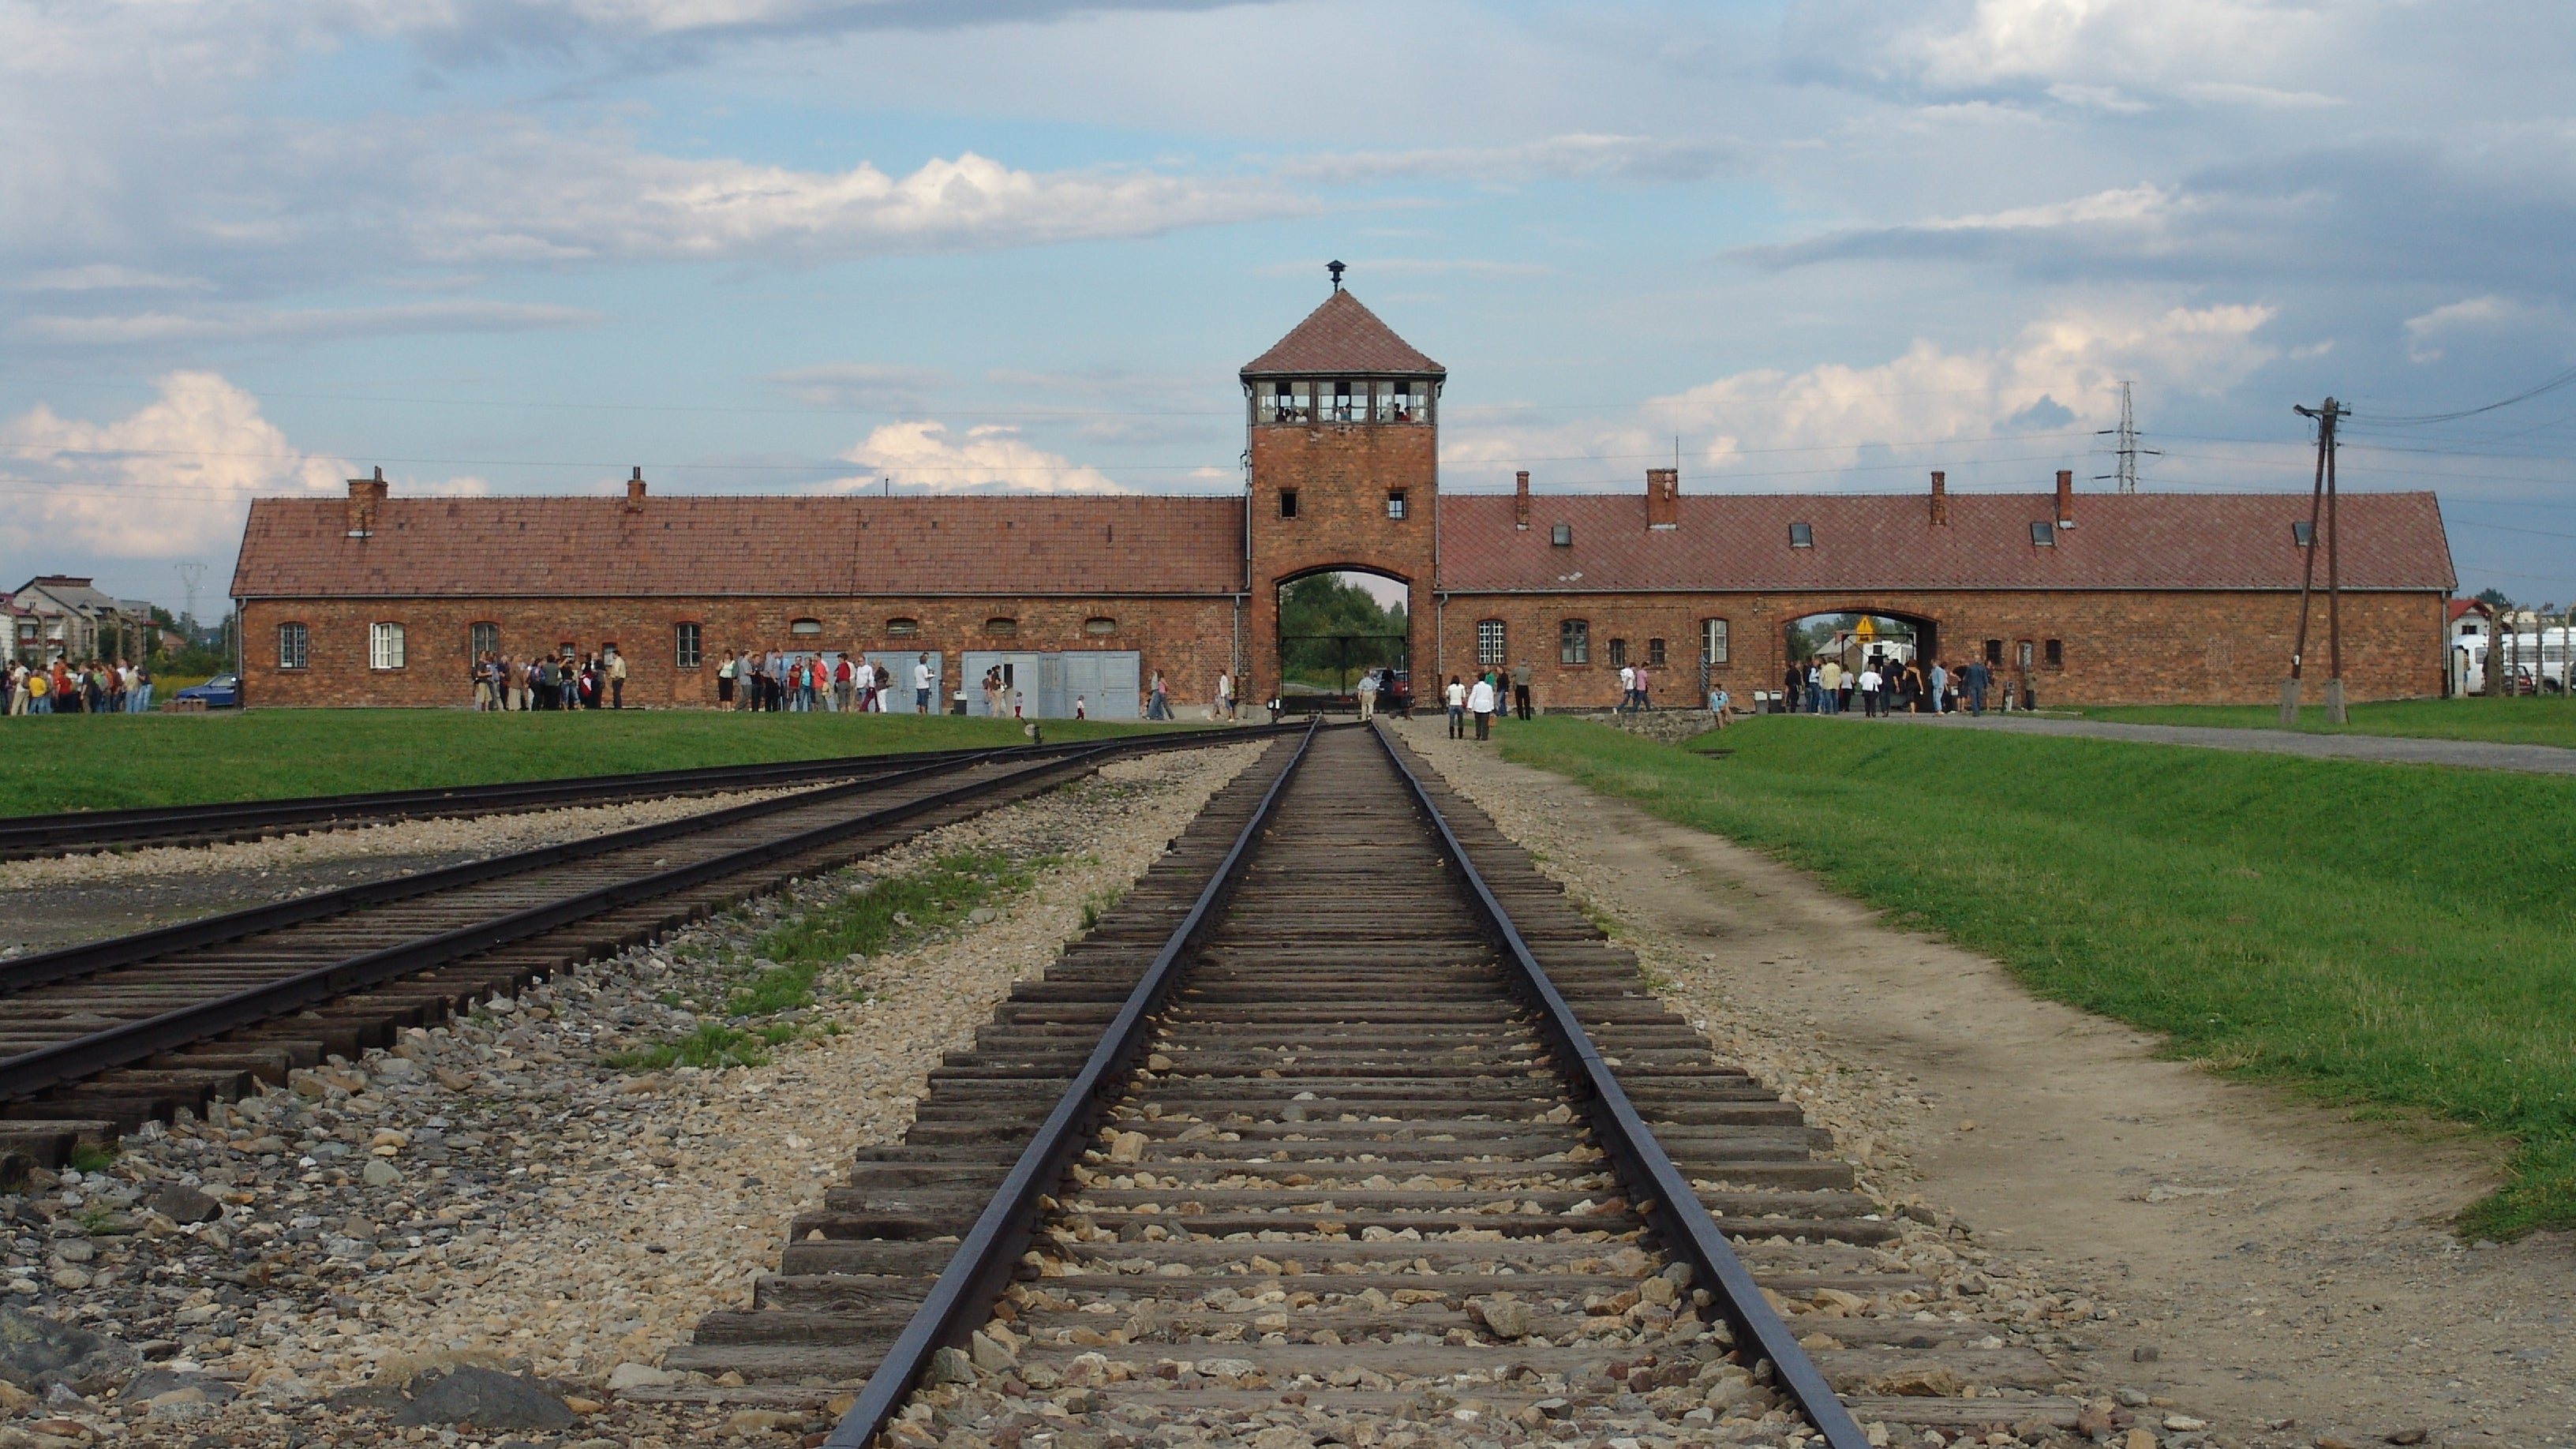 Restored Prisoner's Letter Uncovers Horrific Details Of Life At Auschwitz Death Camp